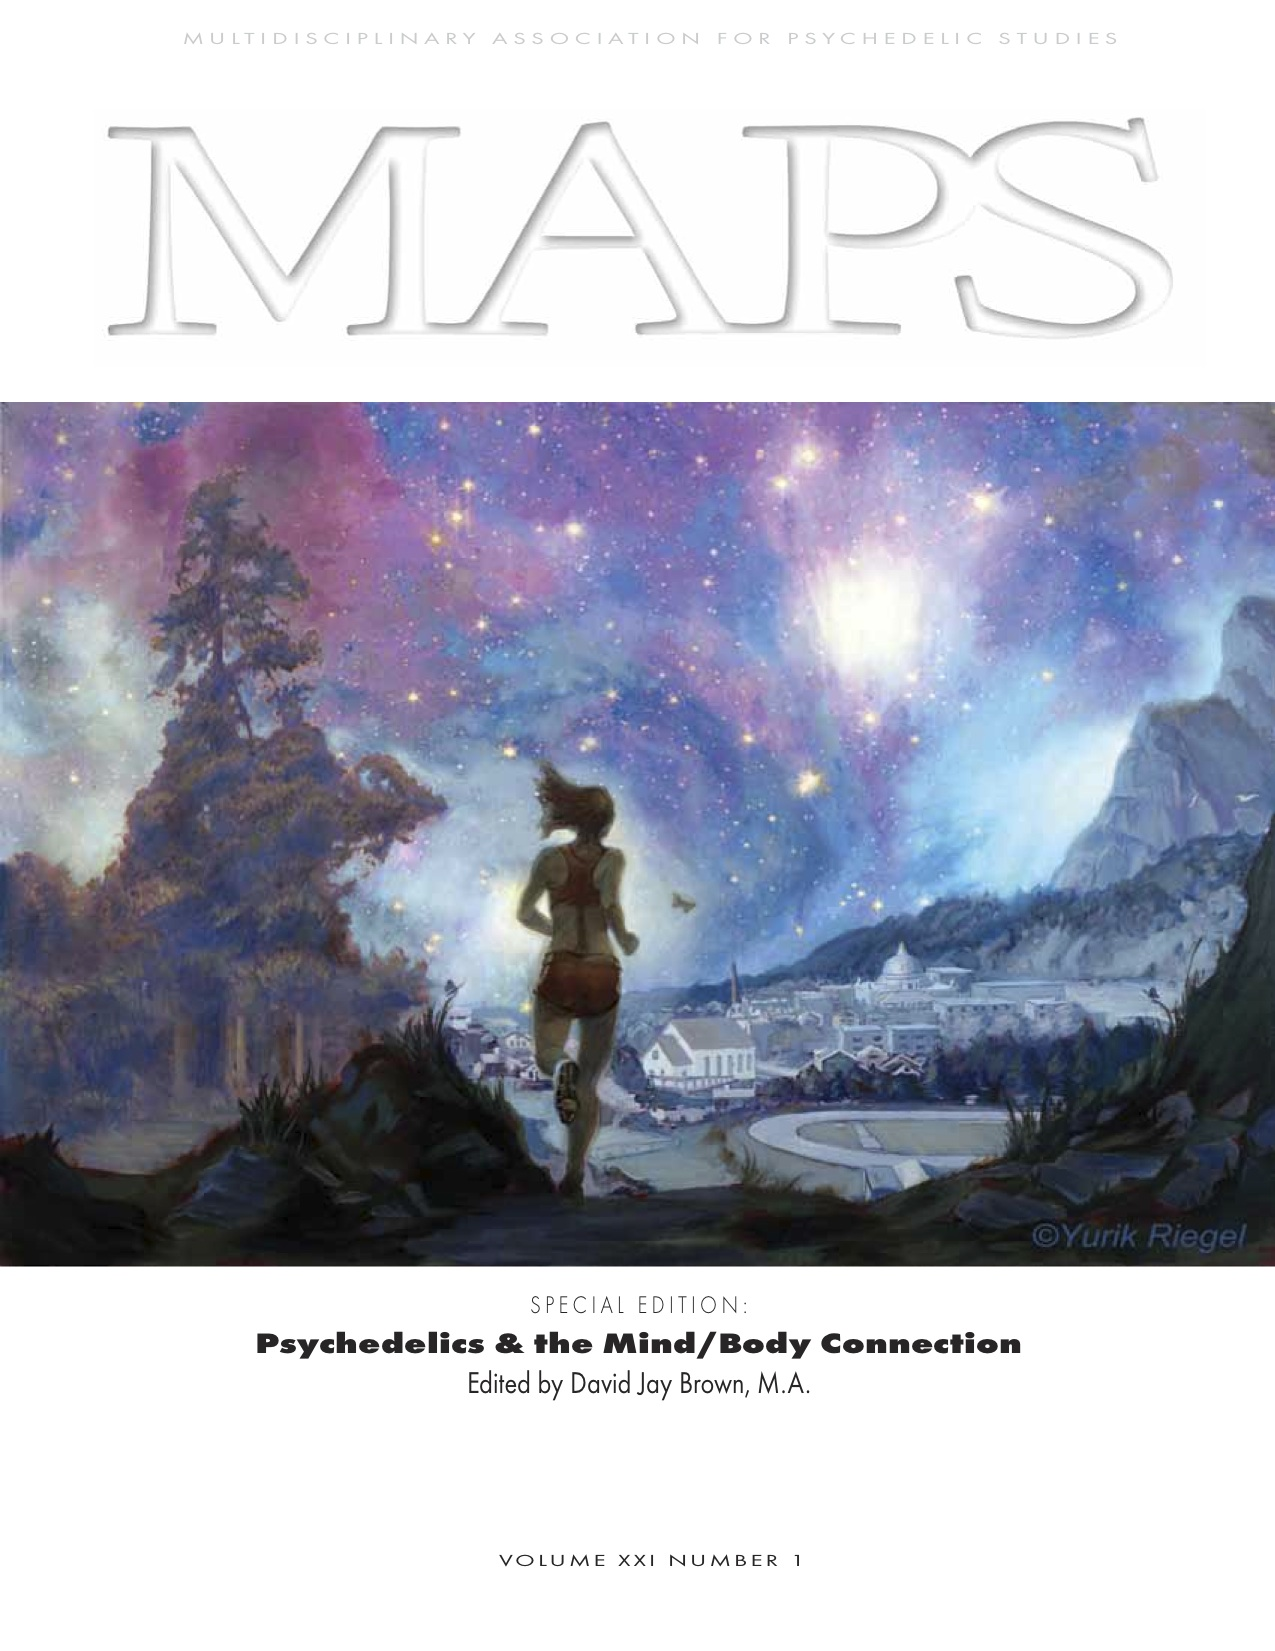 MAPS Bulletin Vol XXI No 1: Spring 2011 - Front Cover Image - Psychedelic Art - Return Home by Yurik Riegel